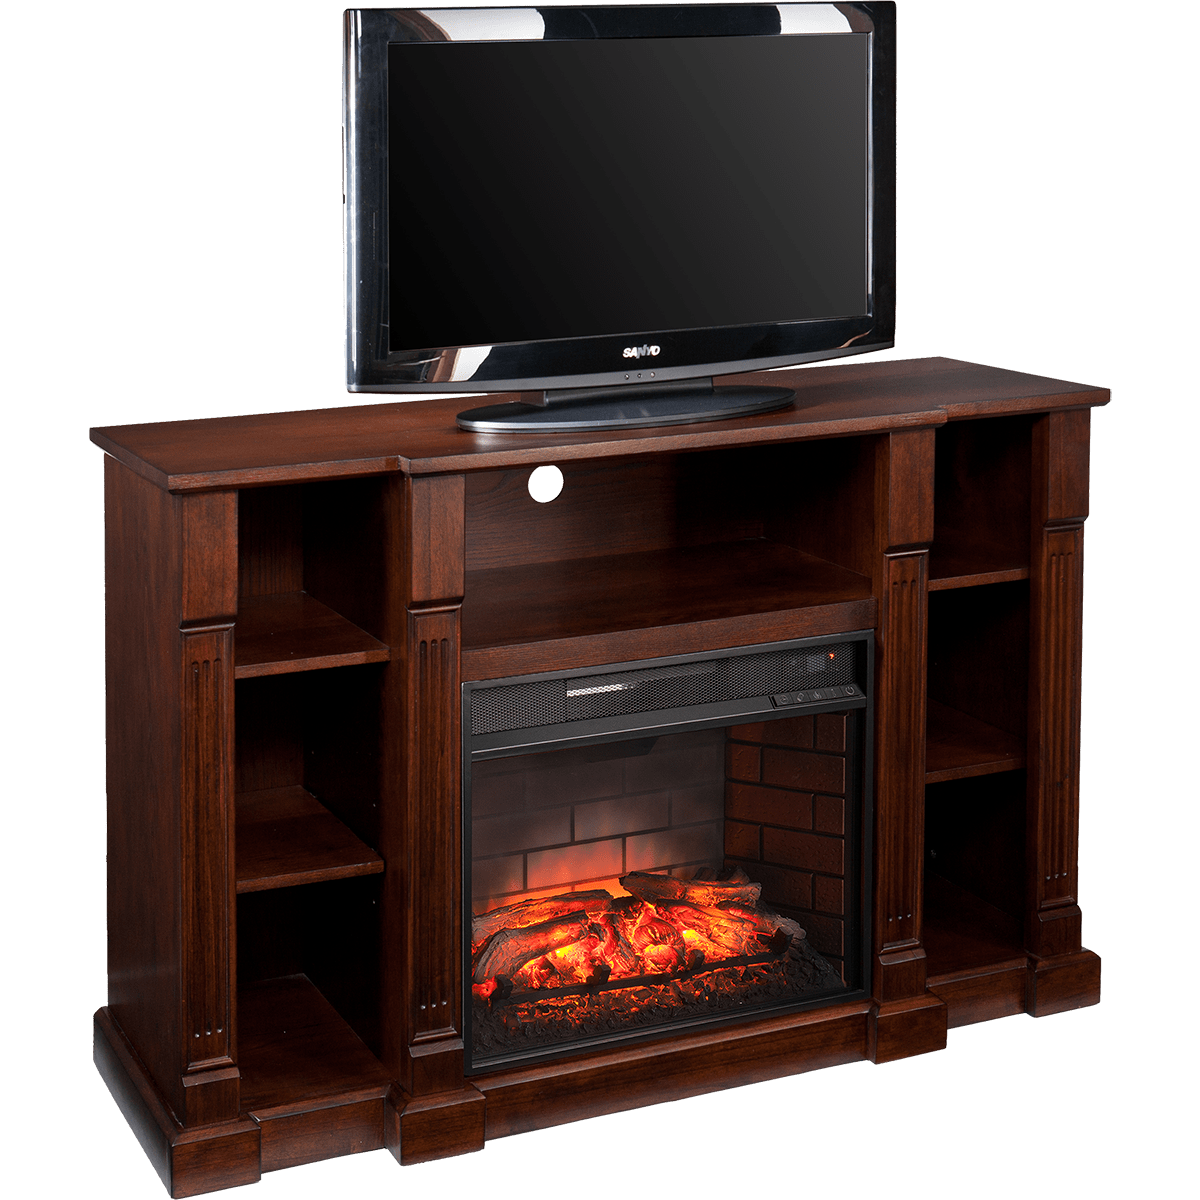 Top Electric Fireplace Brands Comparison Sylvane Free Shipping